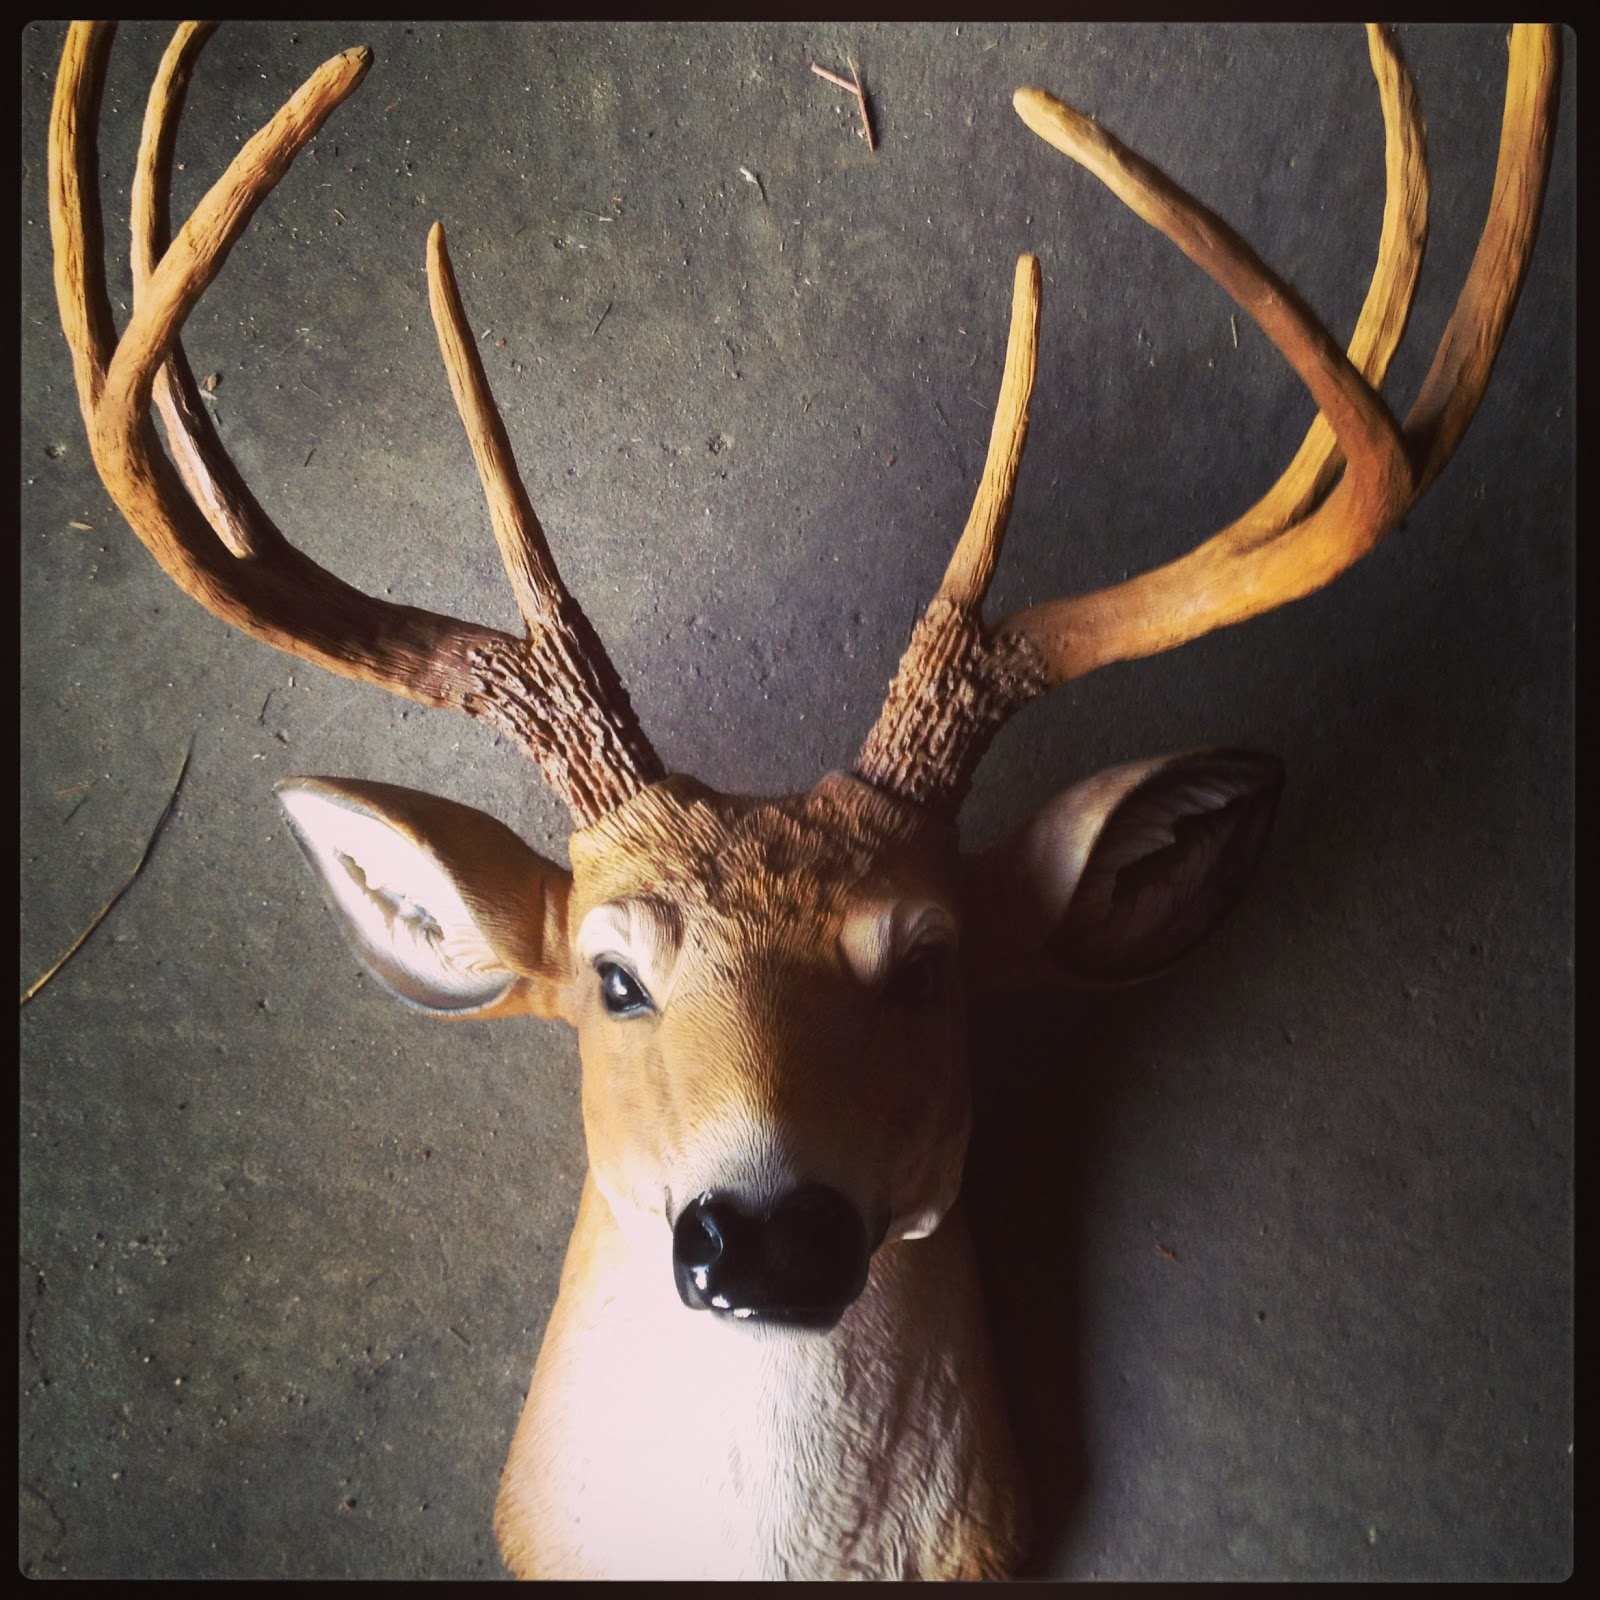 Klaus Lebrecht, the owner of Classic Antlers, is a master at the Art of reproductions. This is just a tiny sample of some of the bucks reproduced by Klaus and his son over the years.